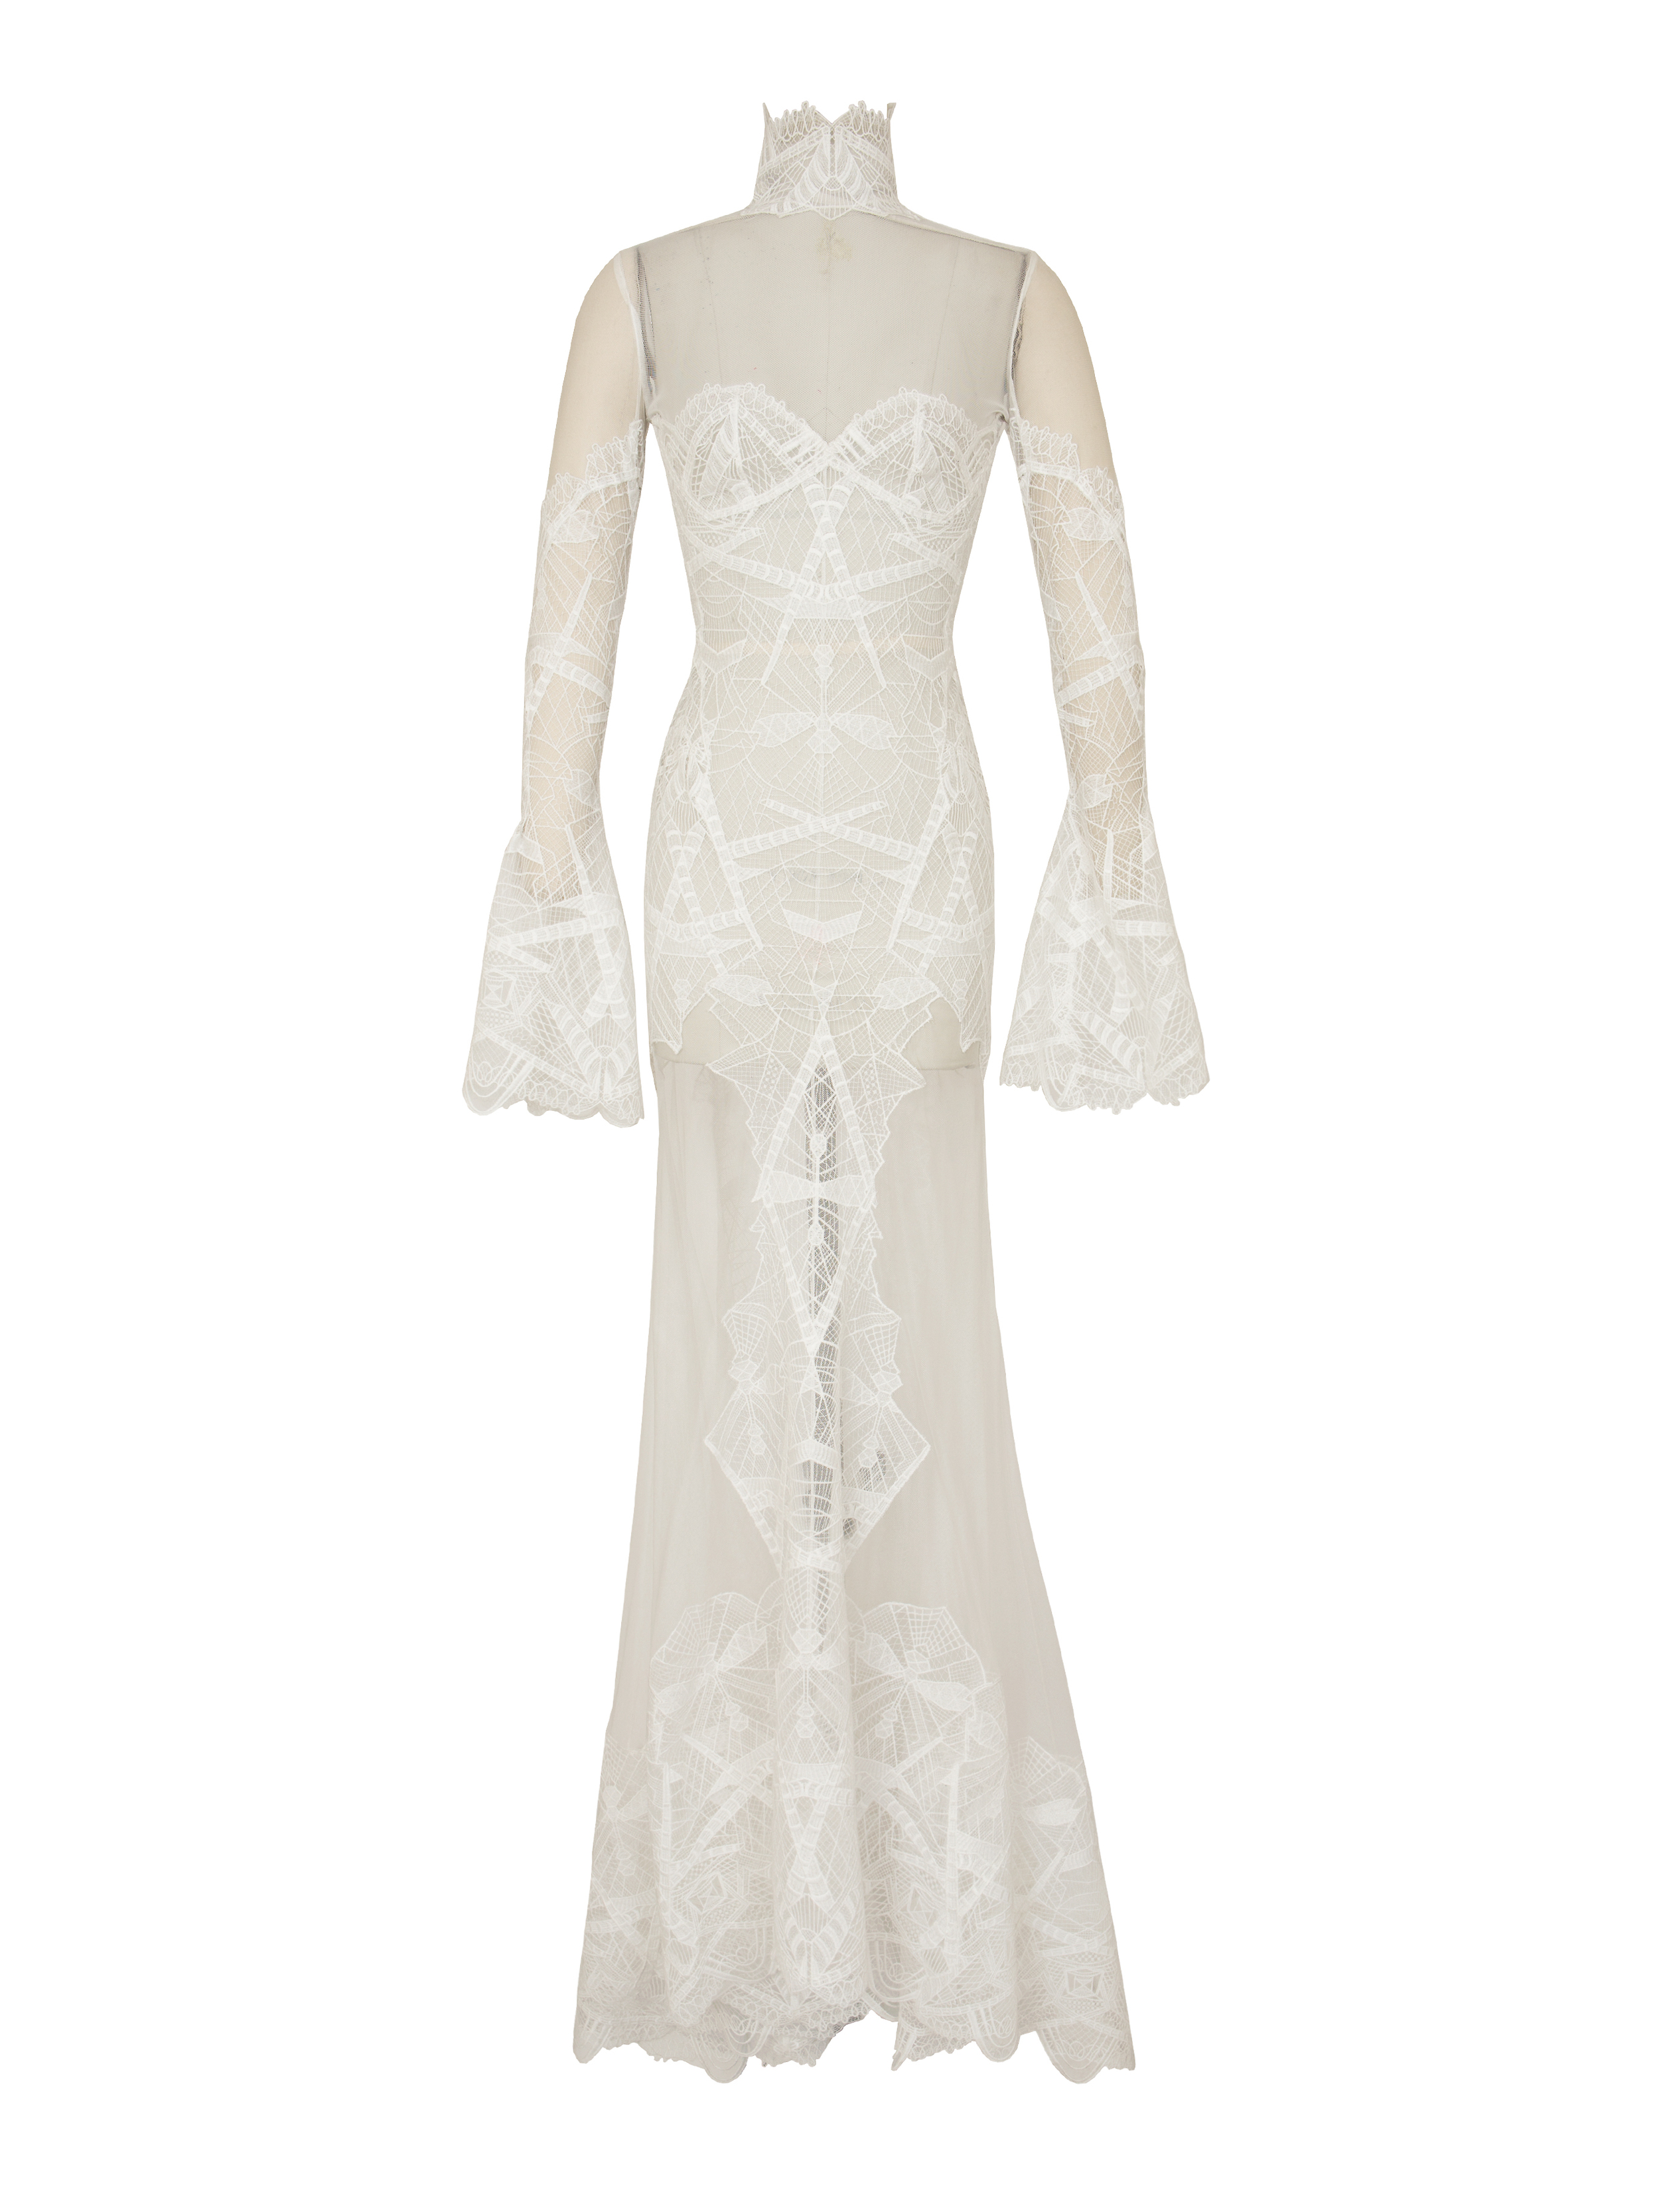 P1914-V, Lace Flare Sleeve Gown, White.jpg